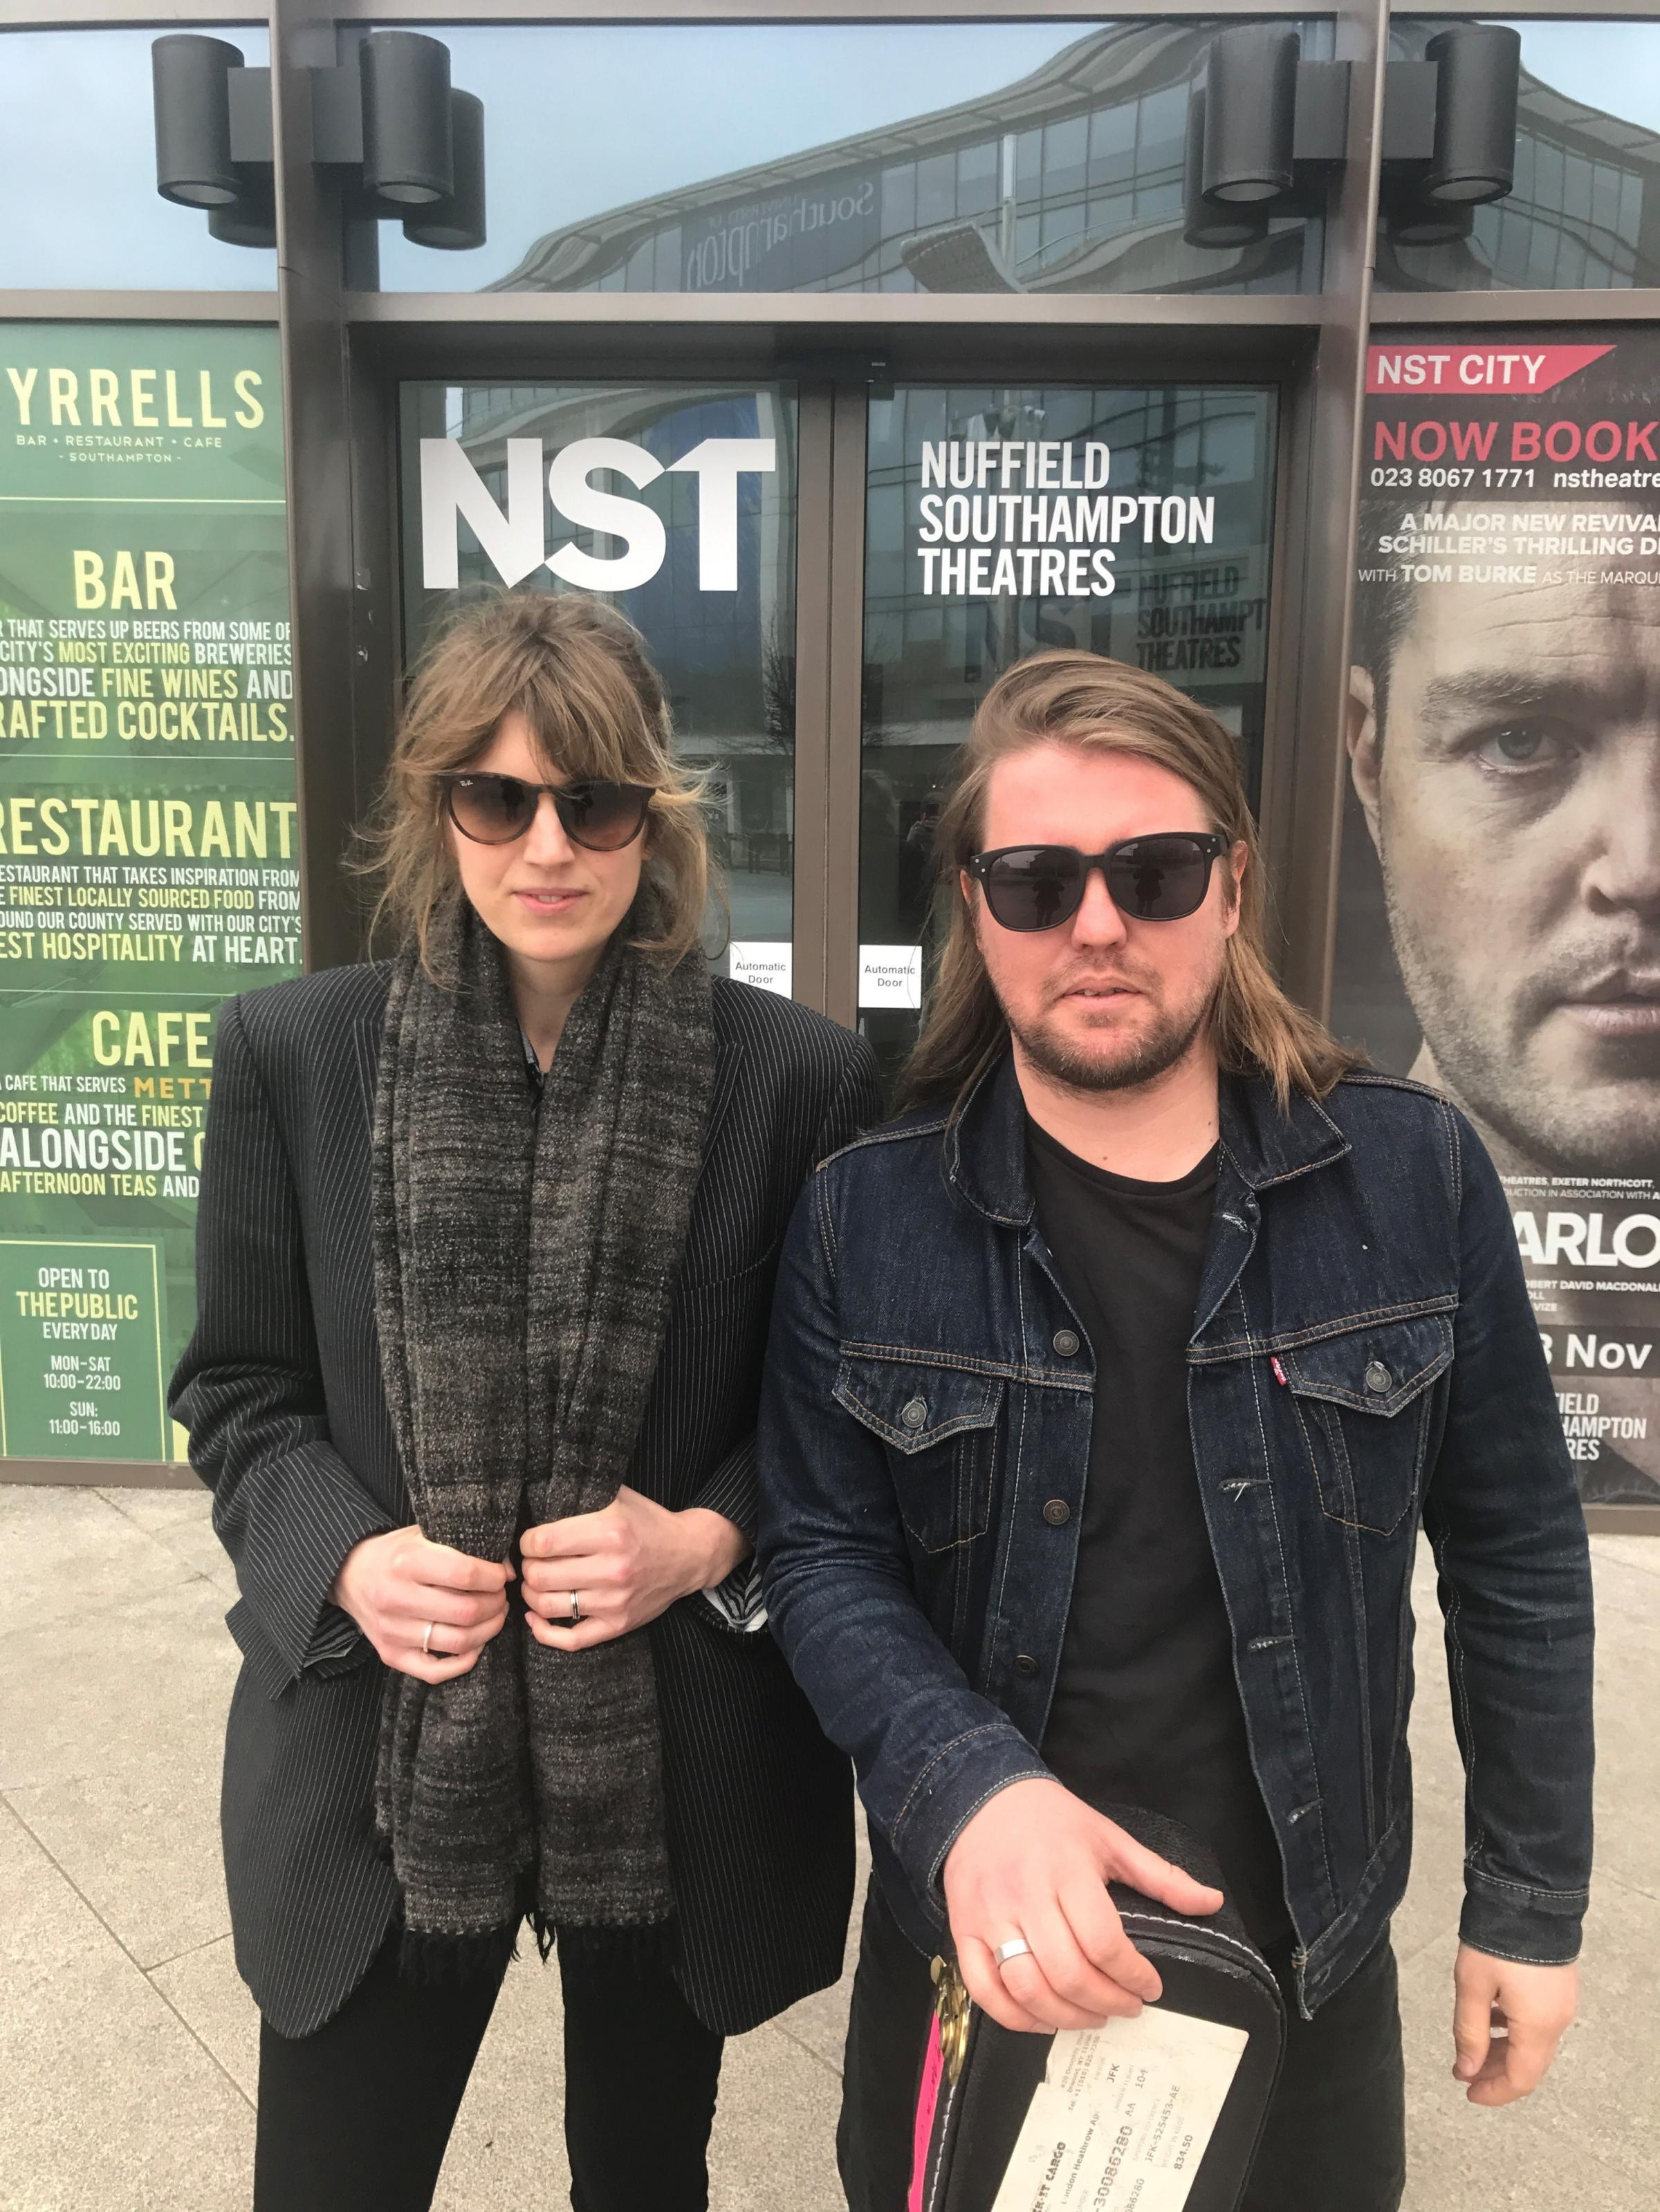 Band of Skulls will play at Studio 144